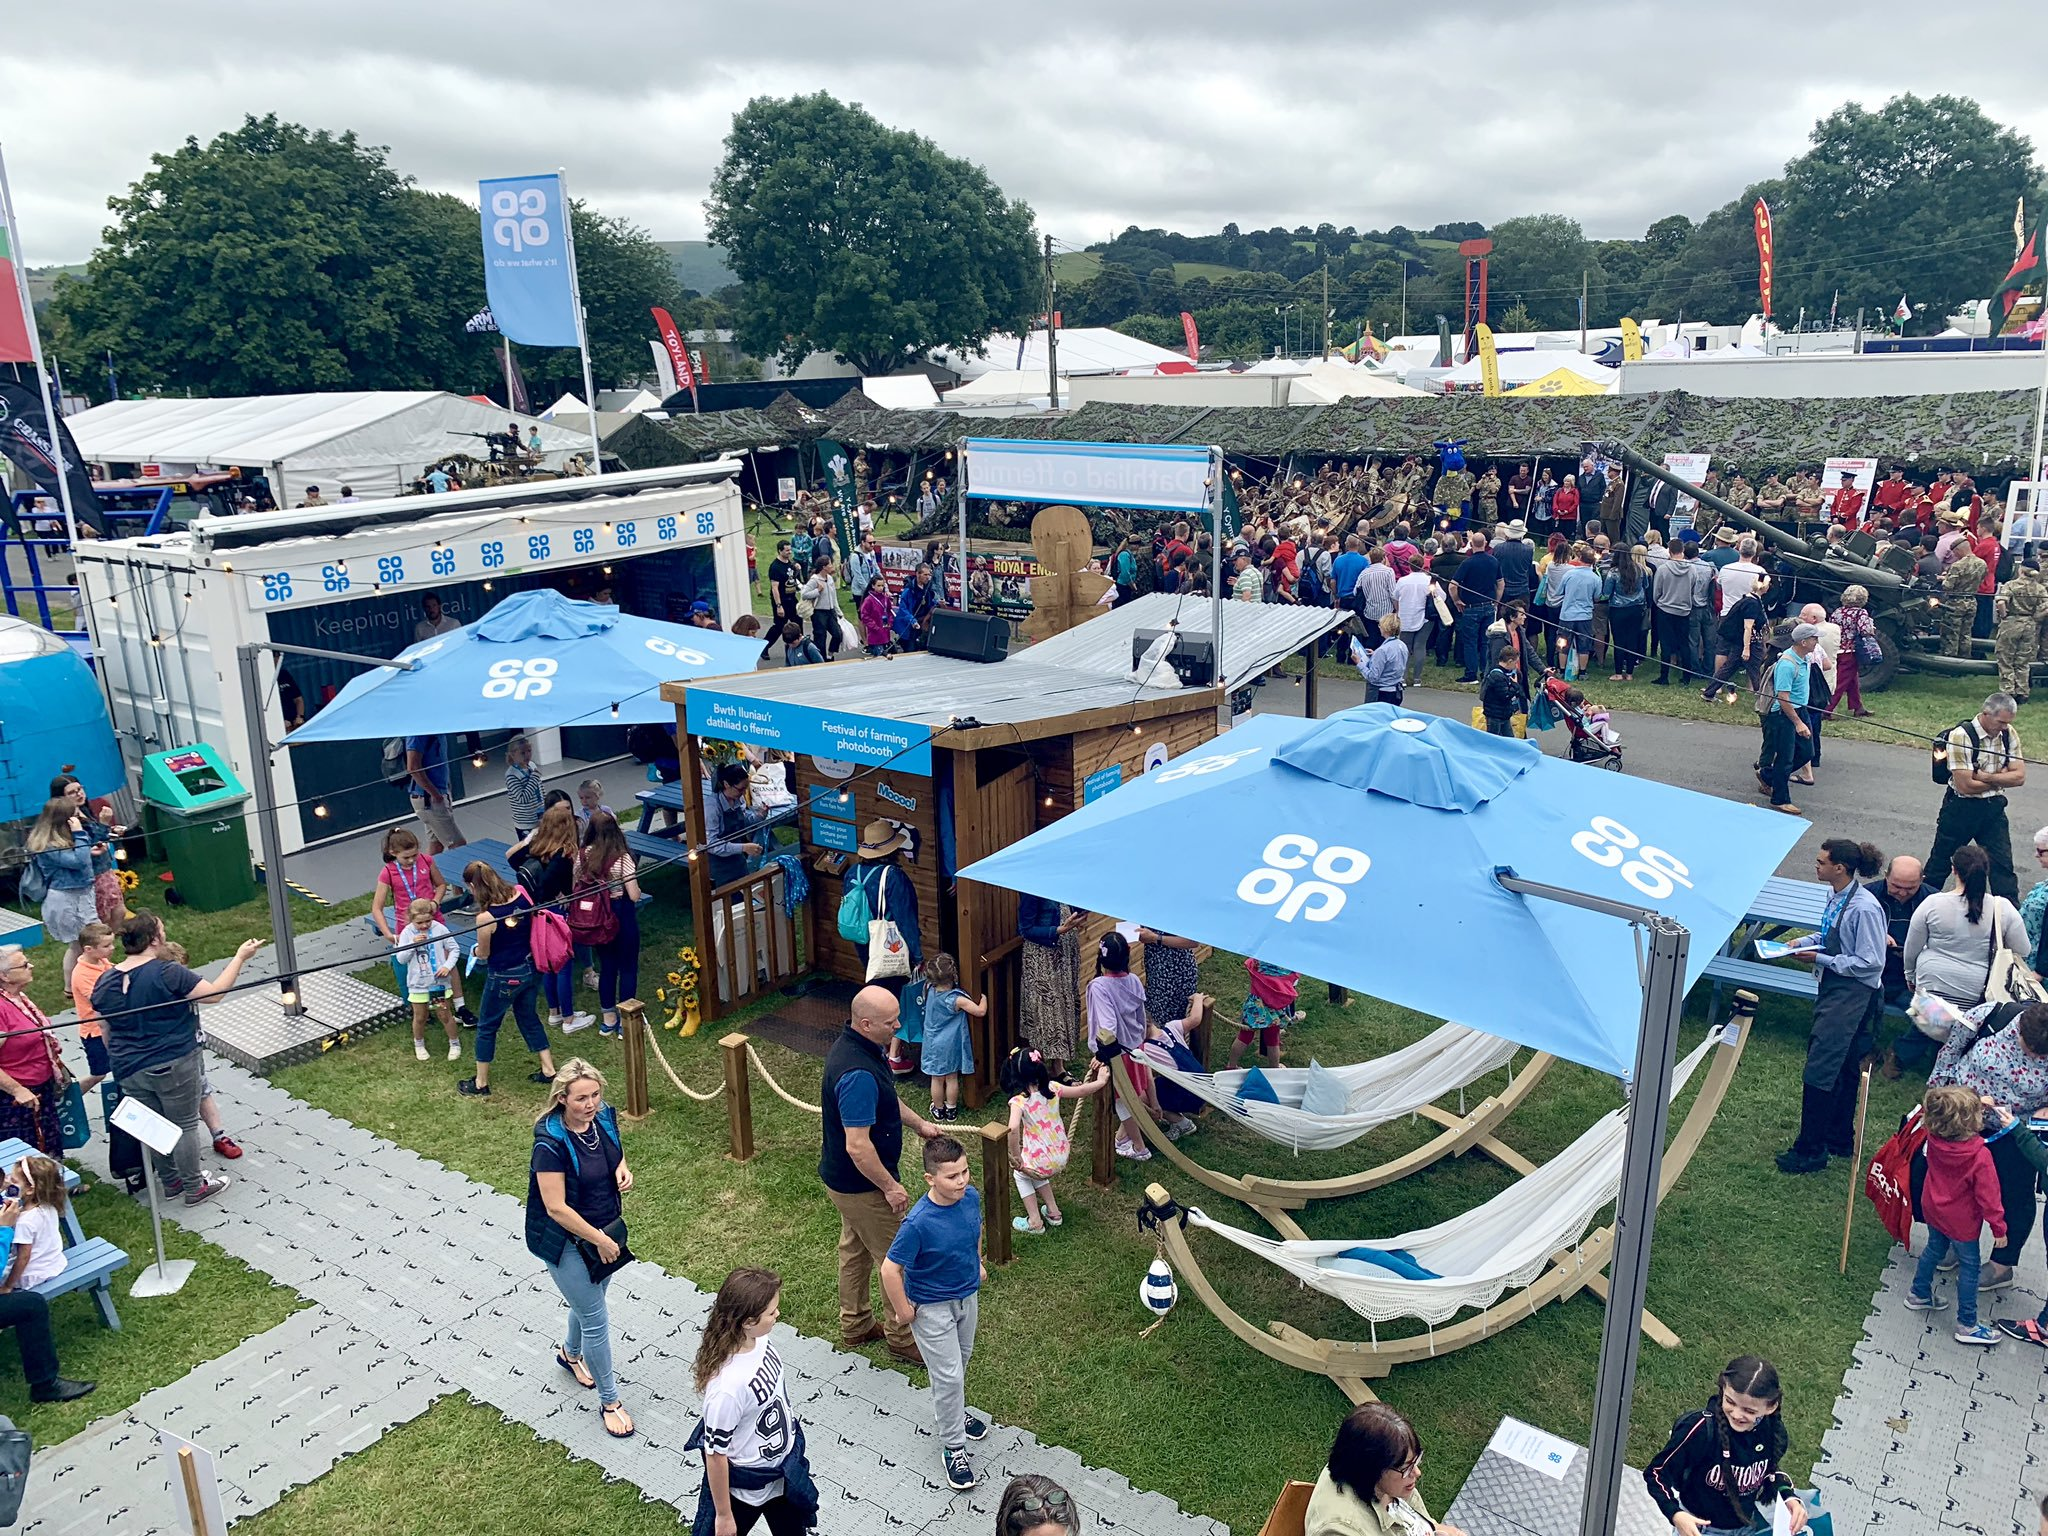 Co-Op Festival of Farming brand activation at Royal Welsh Show